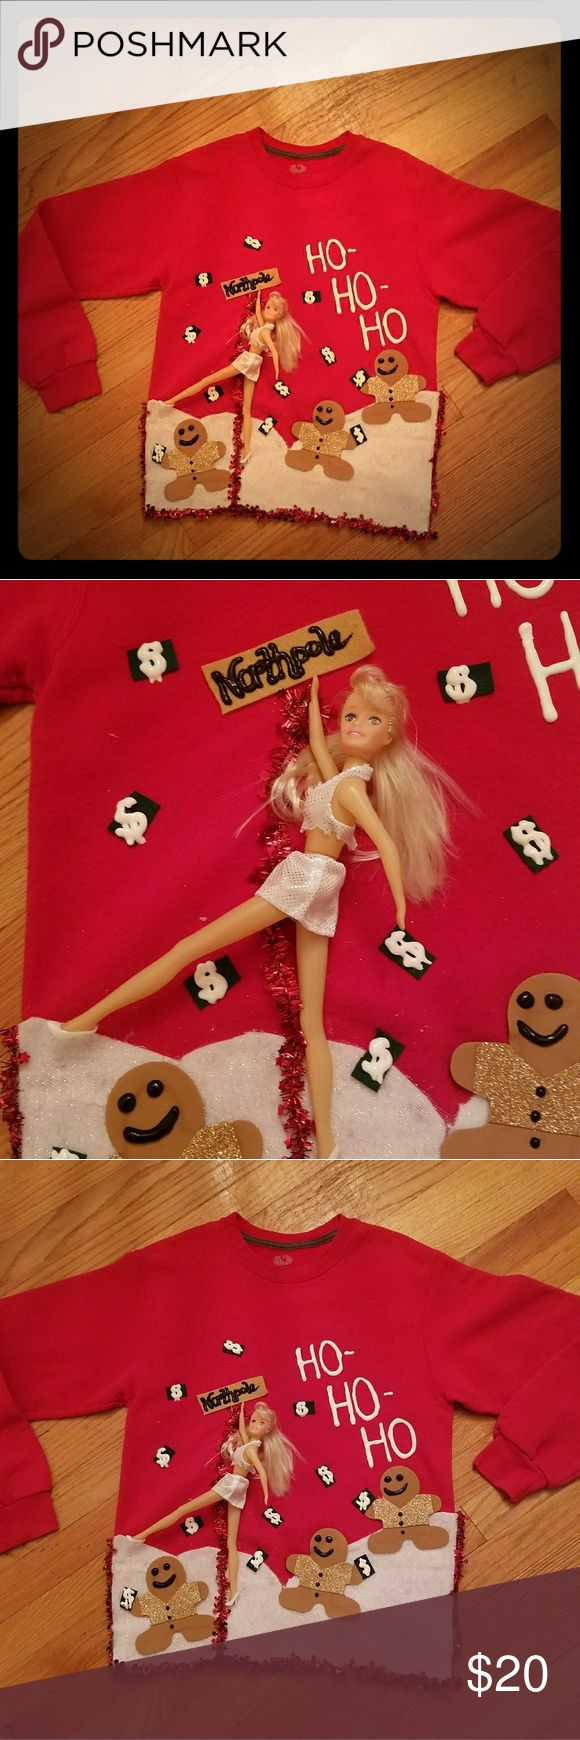 Ho Ho Ho Ugly Christmas Sweater Handmade ugly Christmas sweaters. Red sweatshirt with Barbie and gingerbread cookies. Super fun ugly sweater to stand out at any party. You can make requests just drop a comment Sweaters